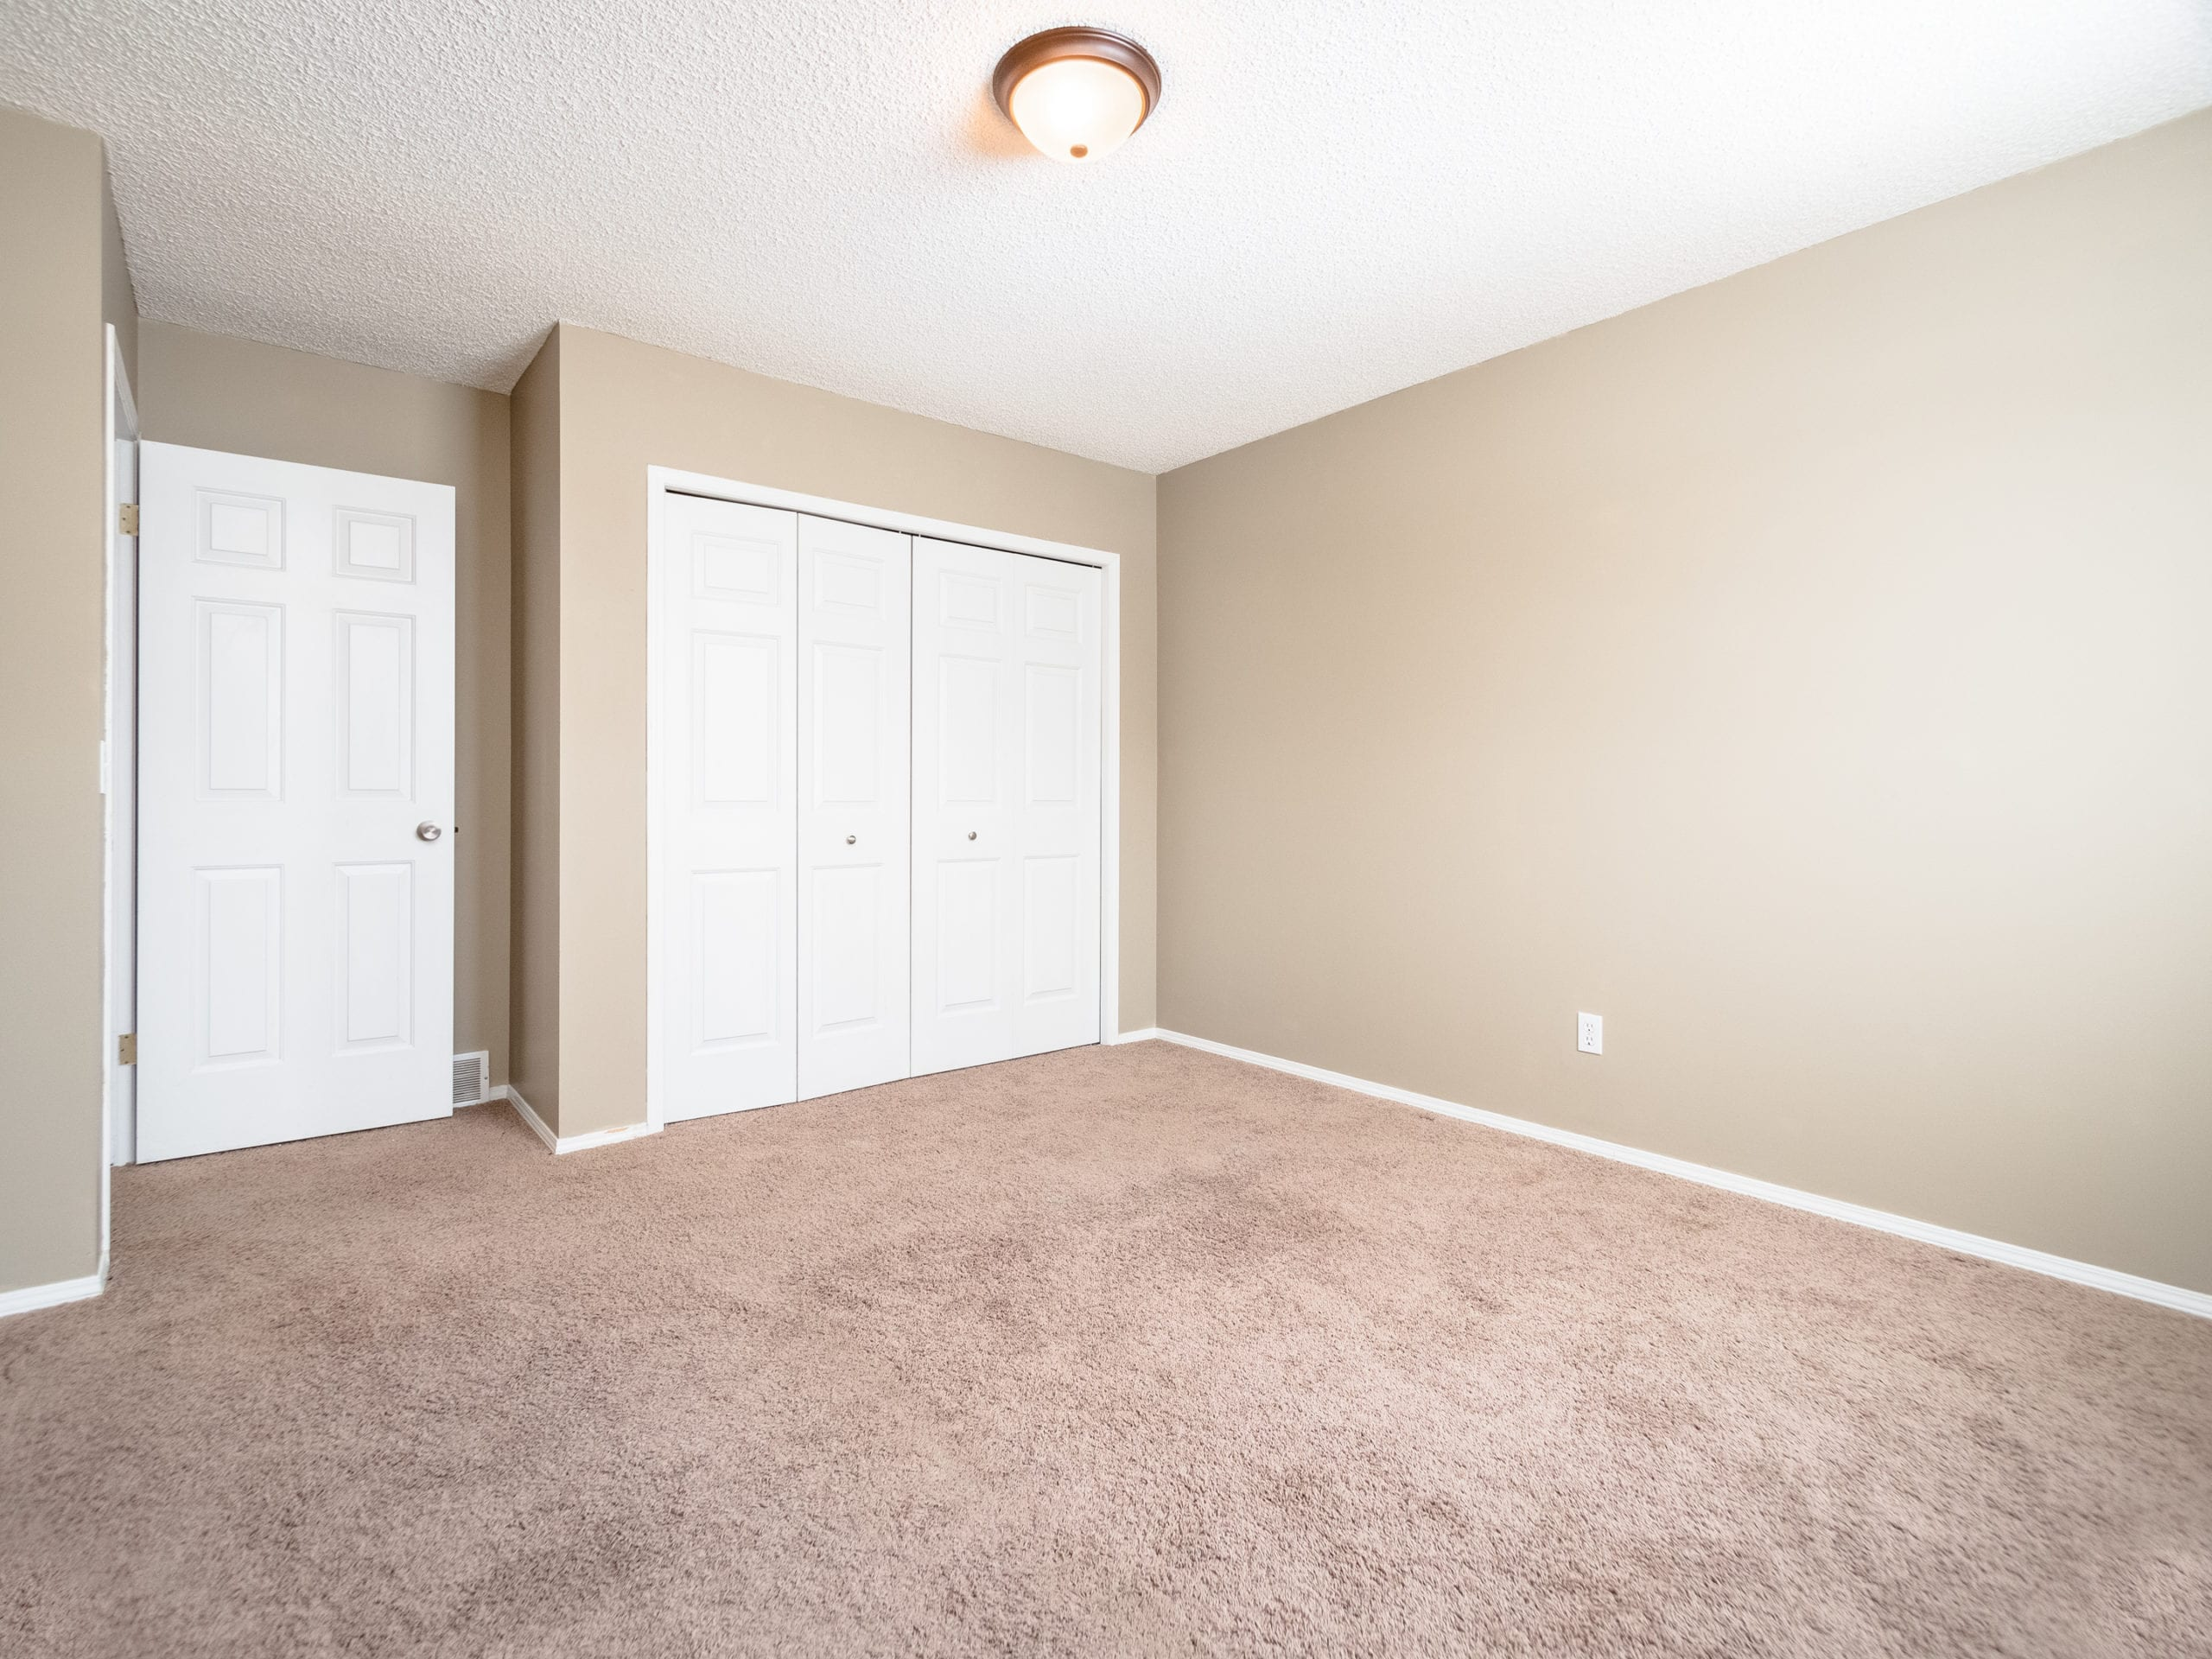 Hello Gorgeous - 143 Woodside Road NW, Airdrie AB. - Tara Molina Real Estate (32 of 54)